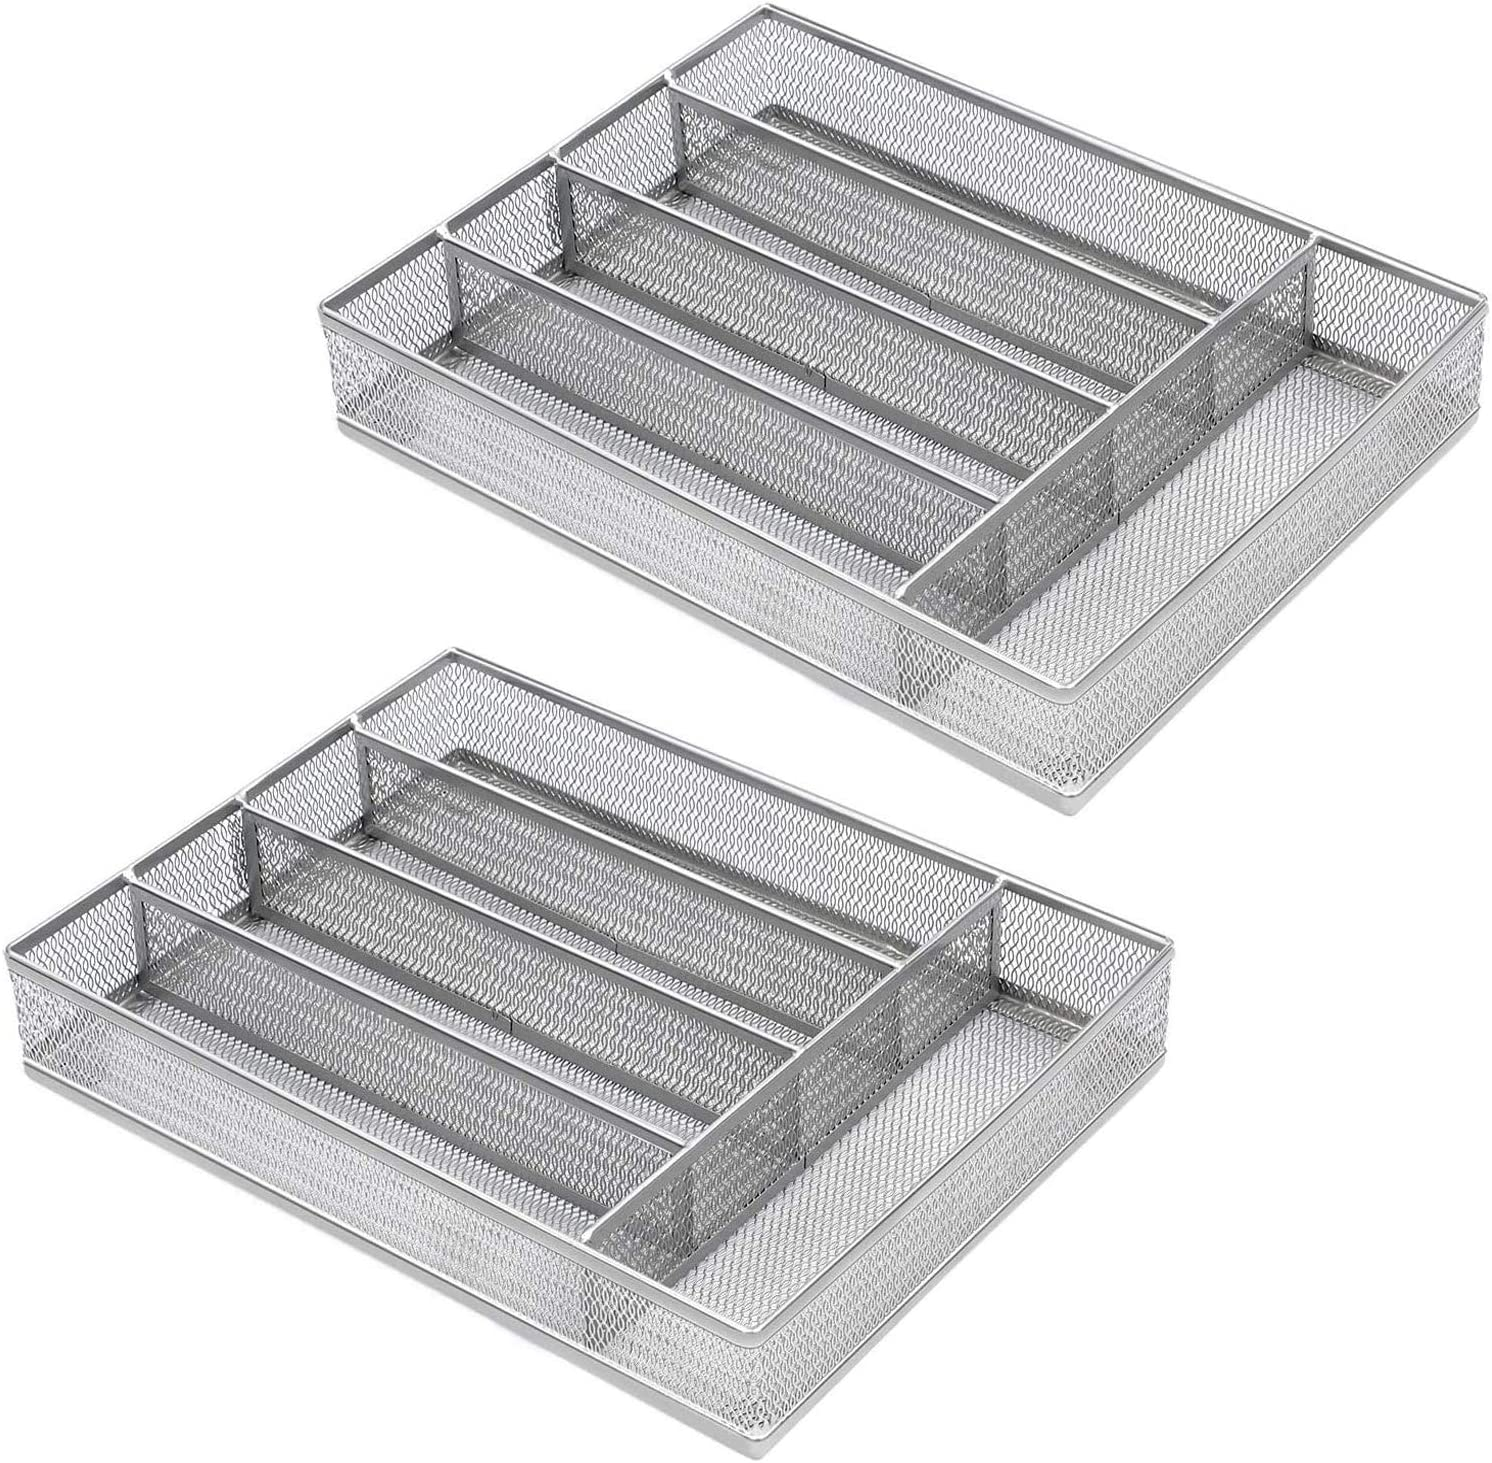 COSWE Flatware Tray Utensil Drawer Organizer Kitchen Utensil Cutlery Tray Mesh Designing with Foam Feet Multi Compartments Keep Desk Drawer and Office Supplies Well Organized-Silver (2 Pack)